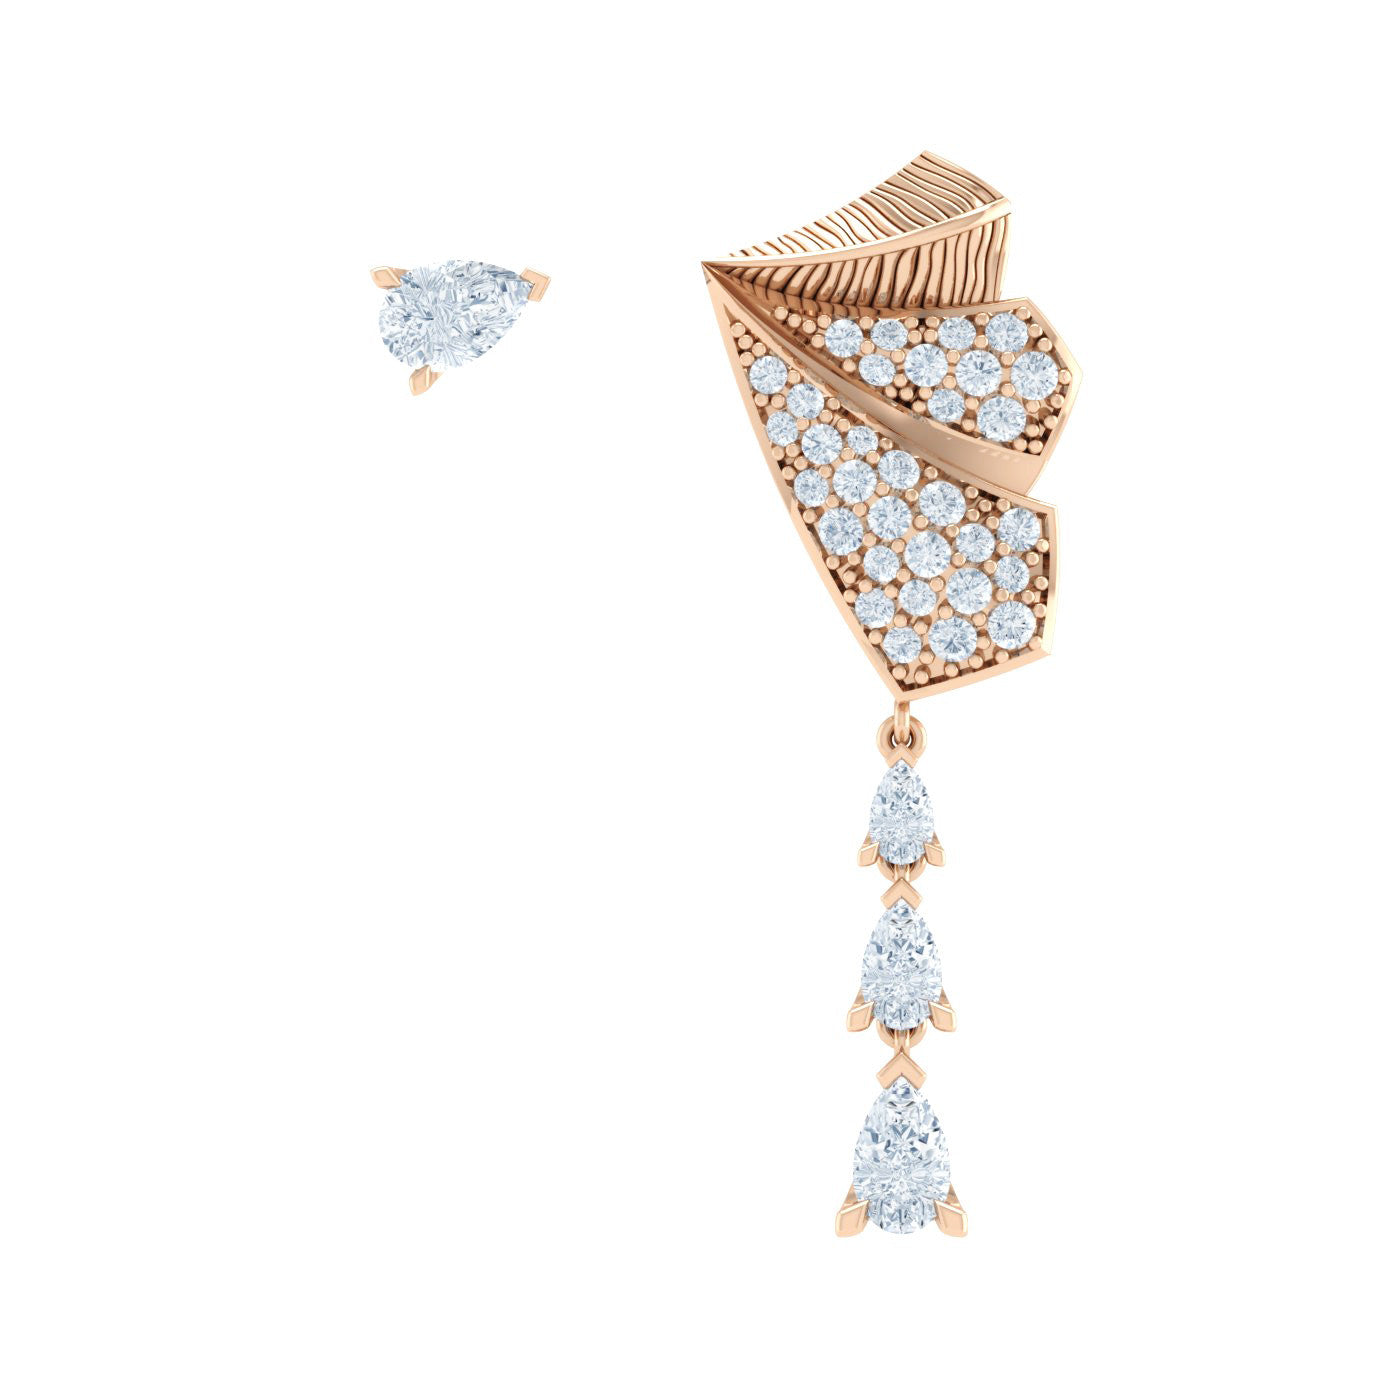 Diamond Earrings in 18kt Gold